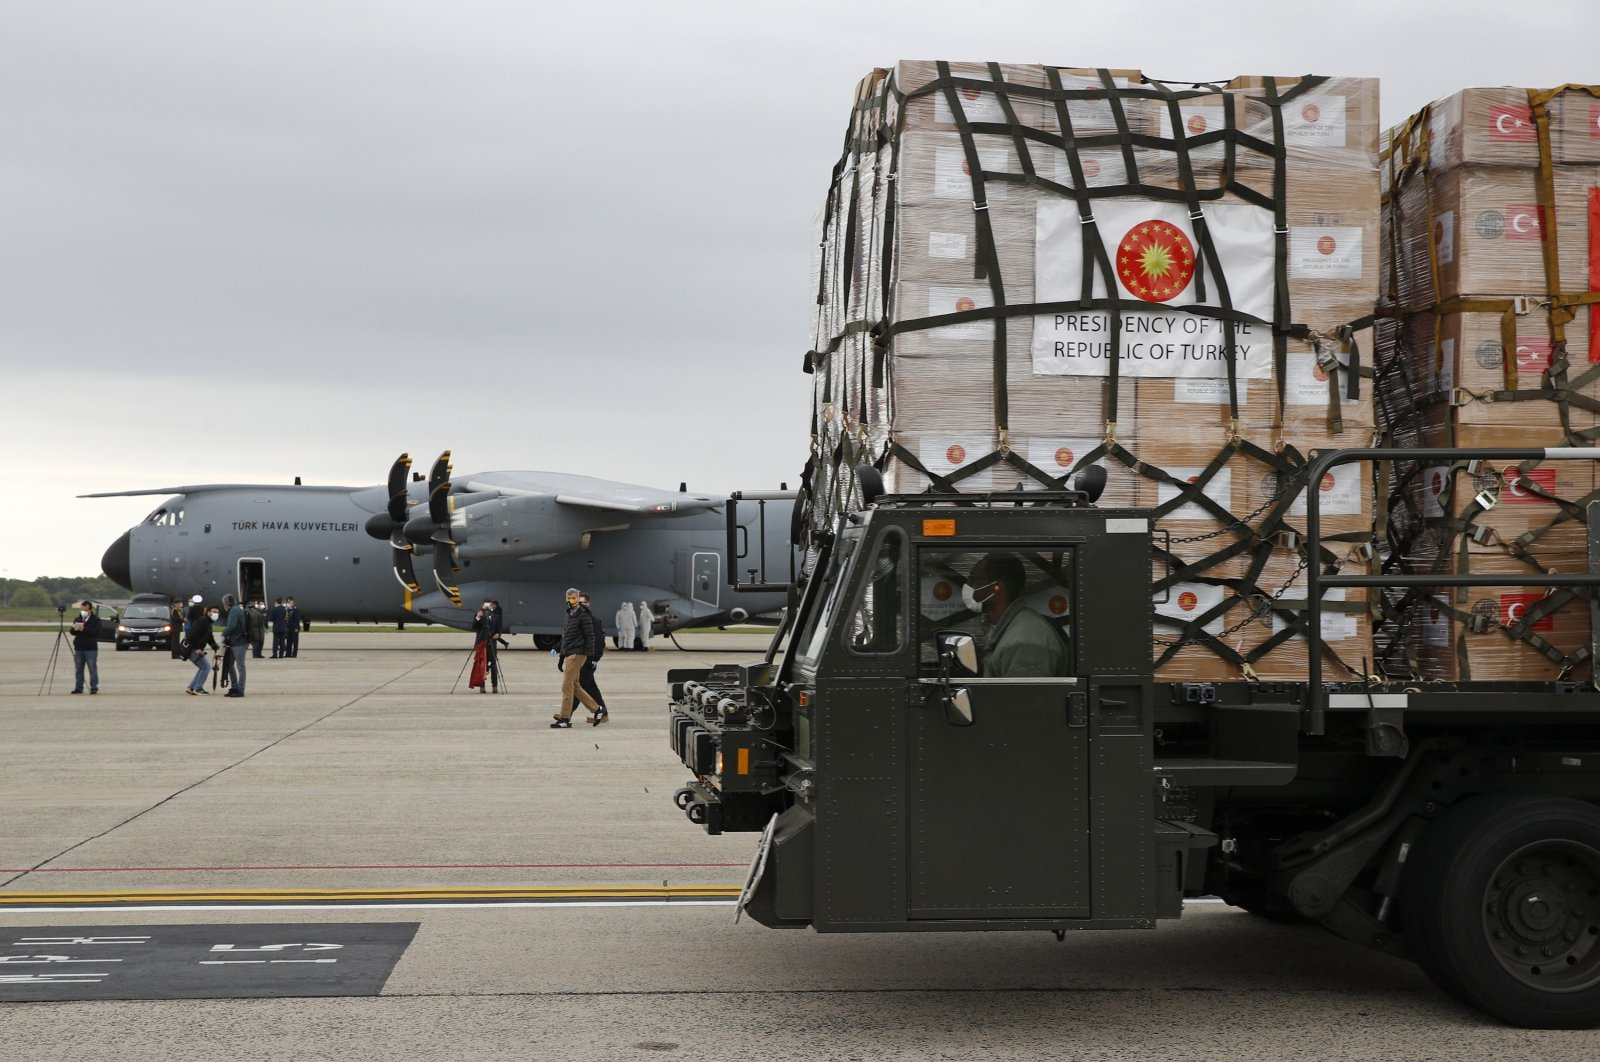 A U.S. Air Force vehicle carries a donation of medical supplies from Turkey after it was unloaded from a military plane, April 28, 2020. (AP Photo)